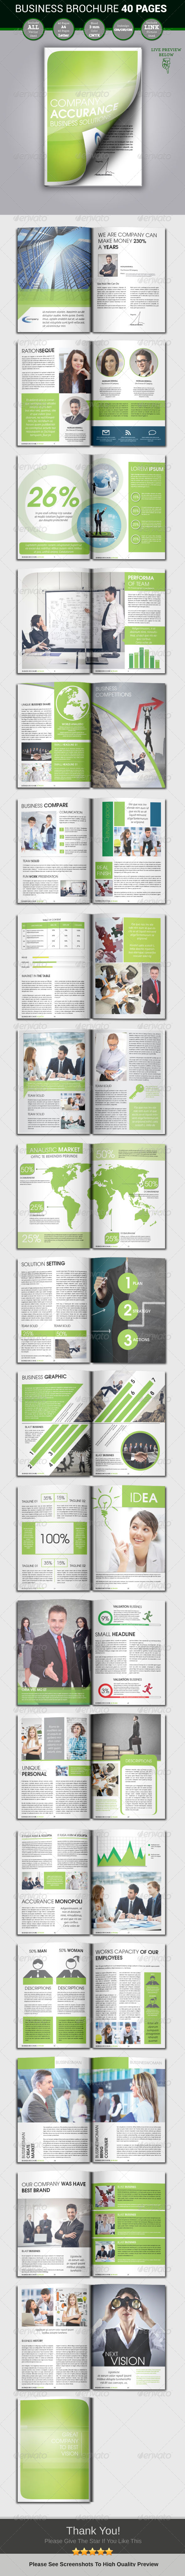 GraphicRiver Business Brochure 40 Pages 4656392